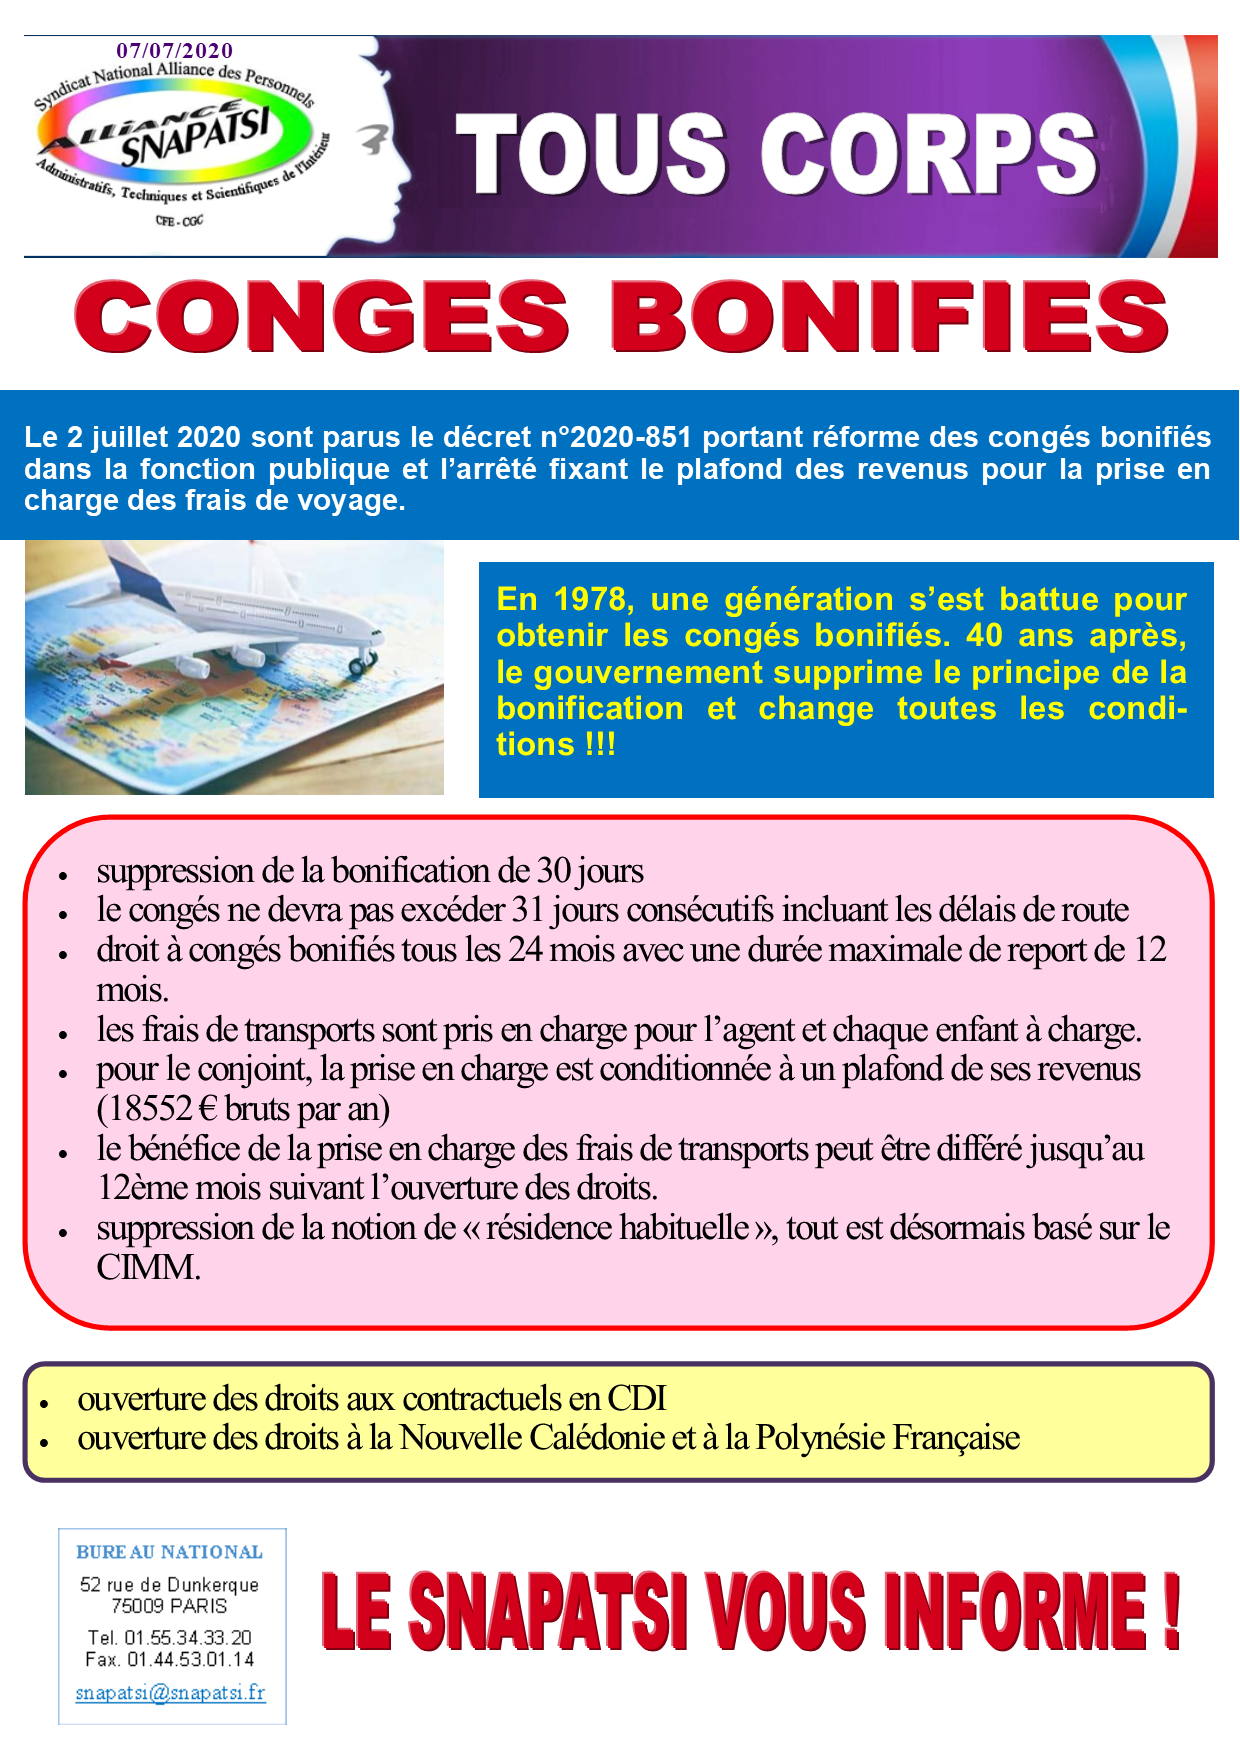 Tract conges bonifies 07072020